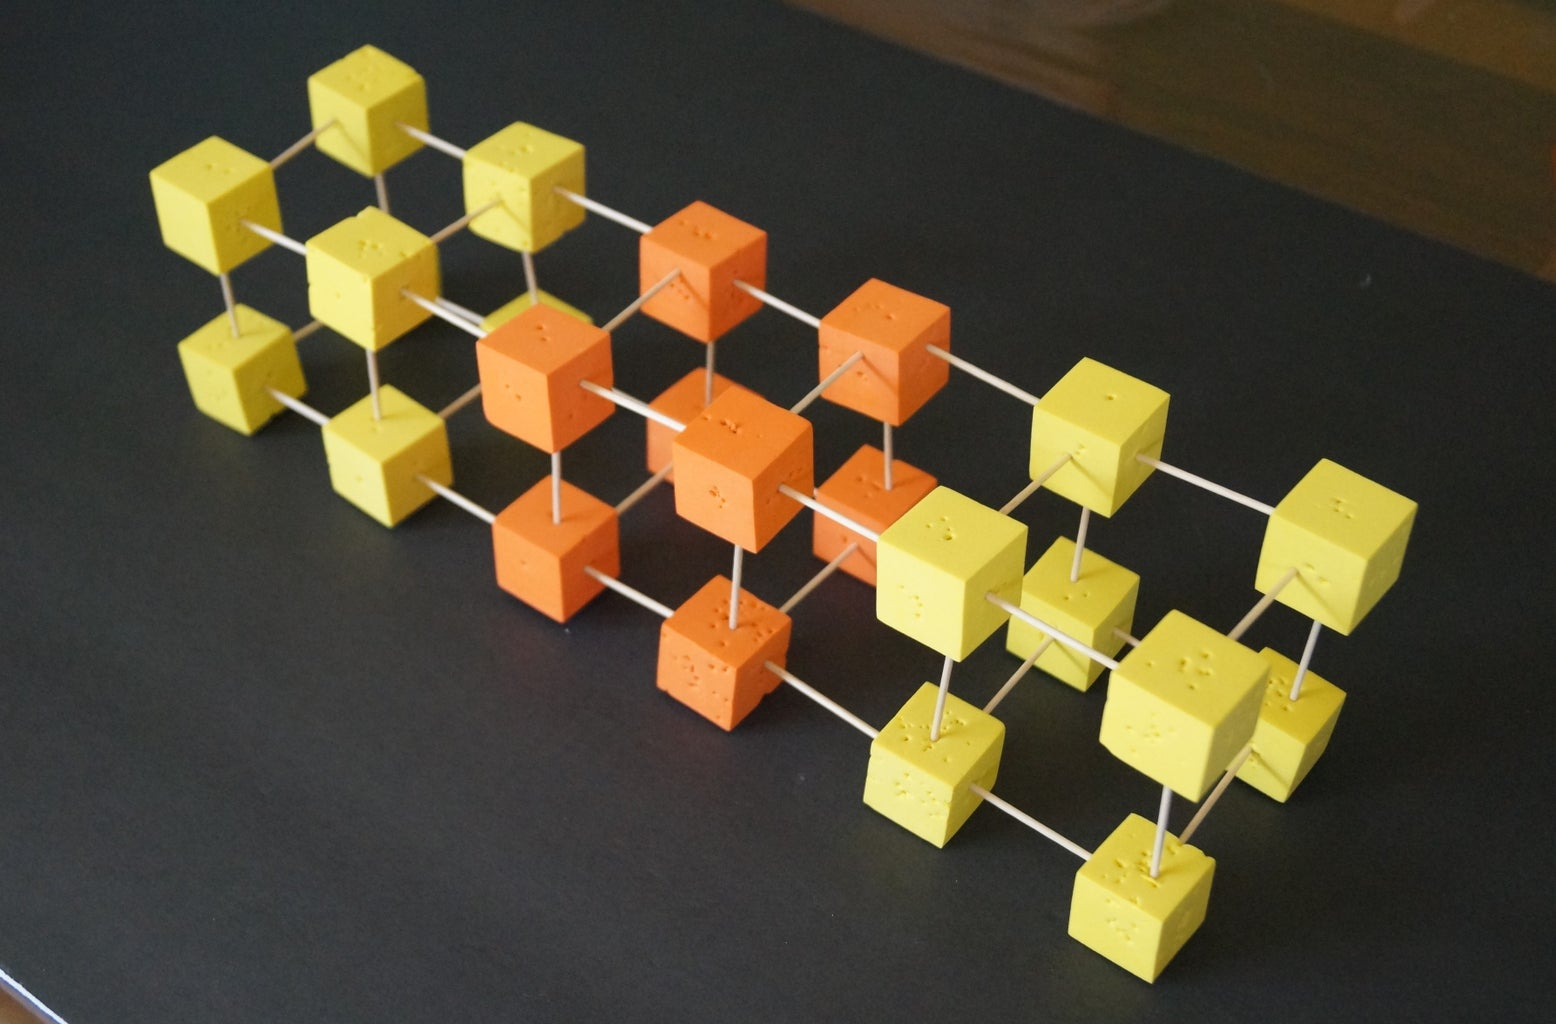 Connect the Cubes